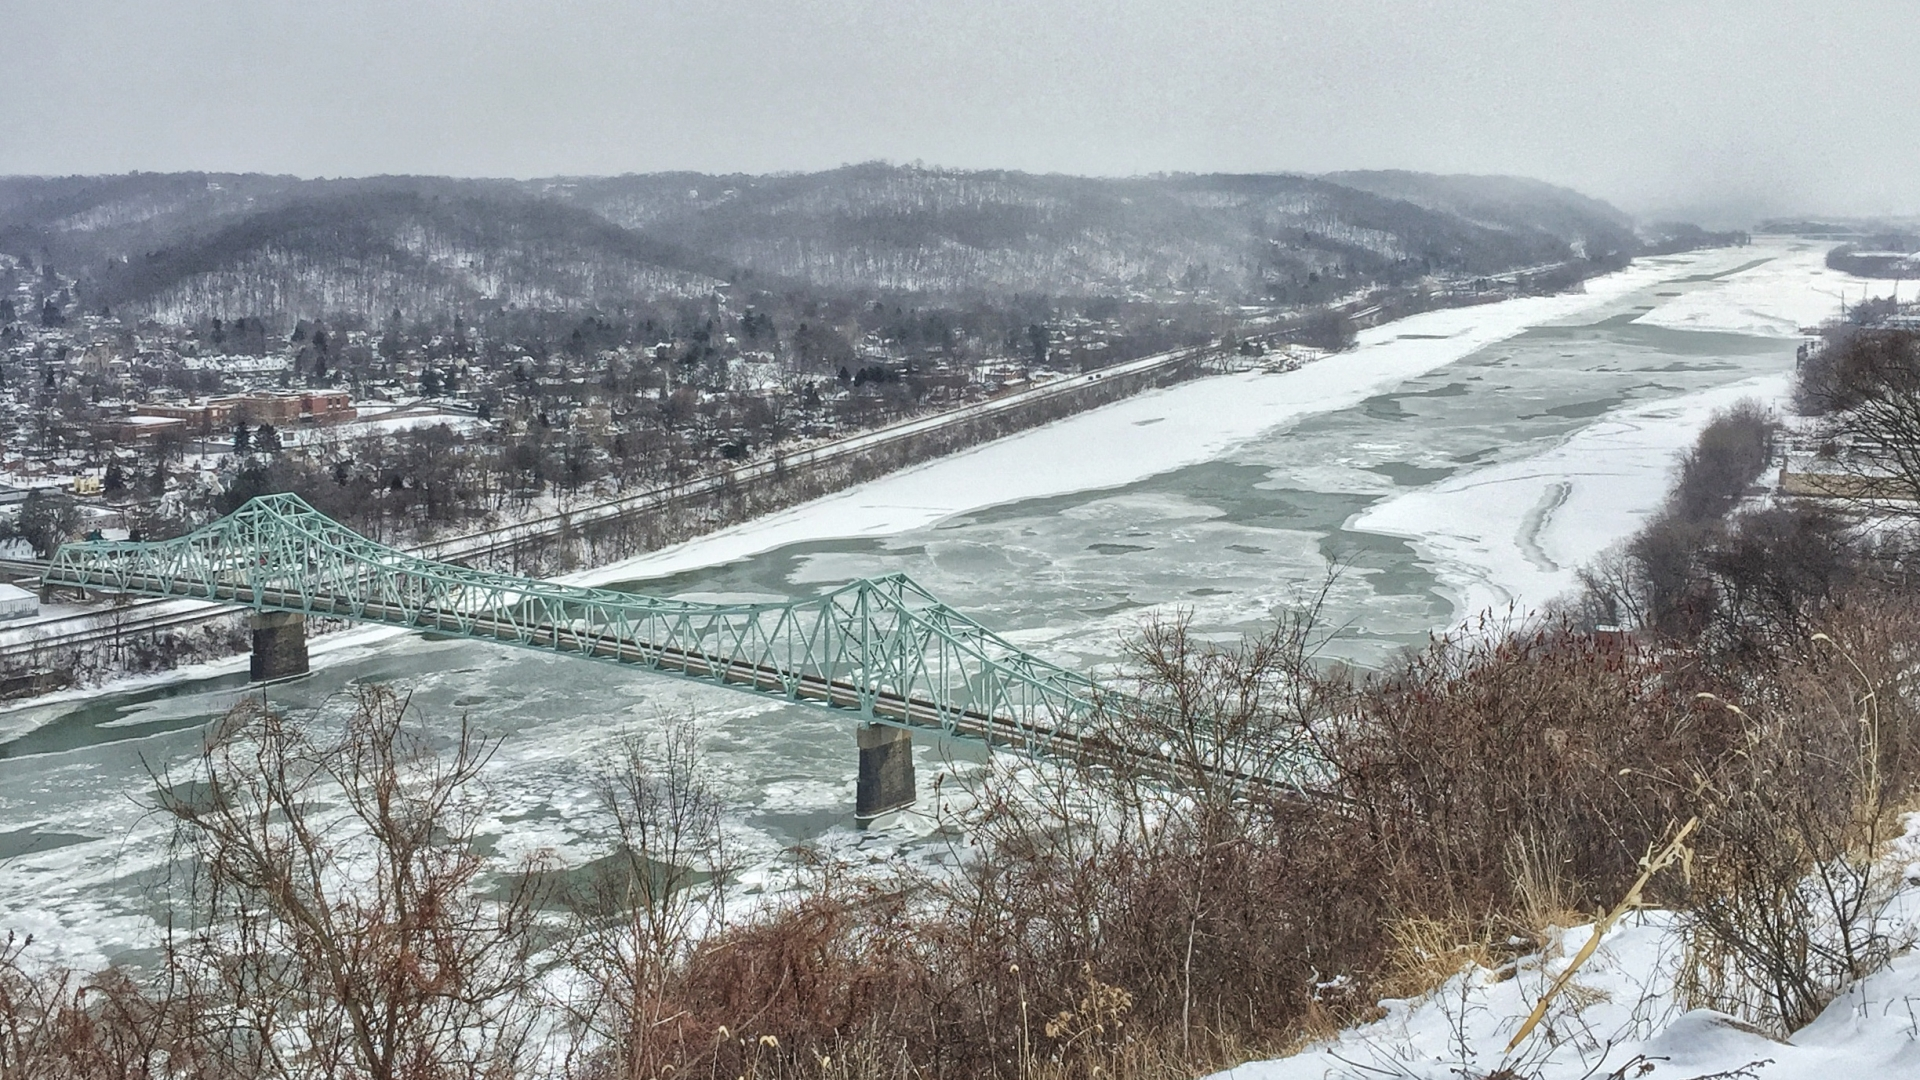 Ohio River in winter. (Credit: S4M/Getty Images)